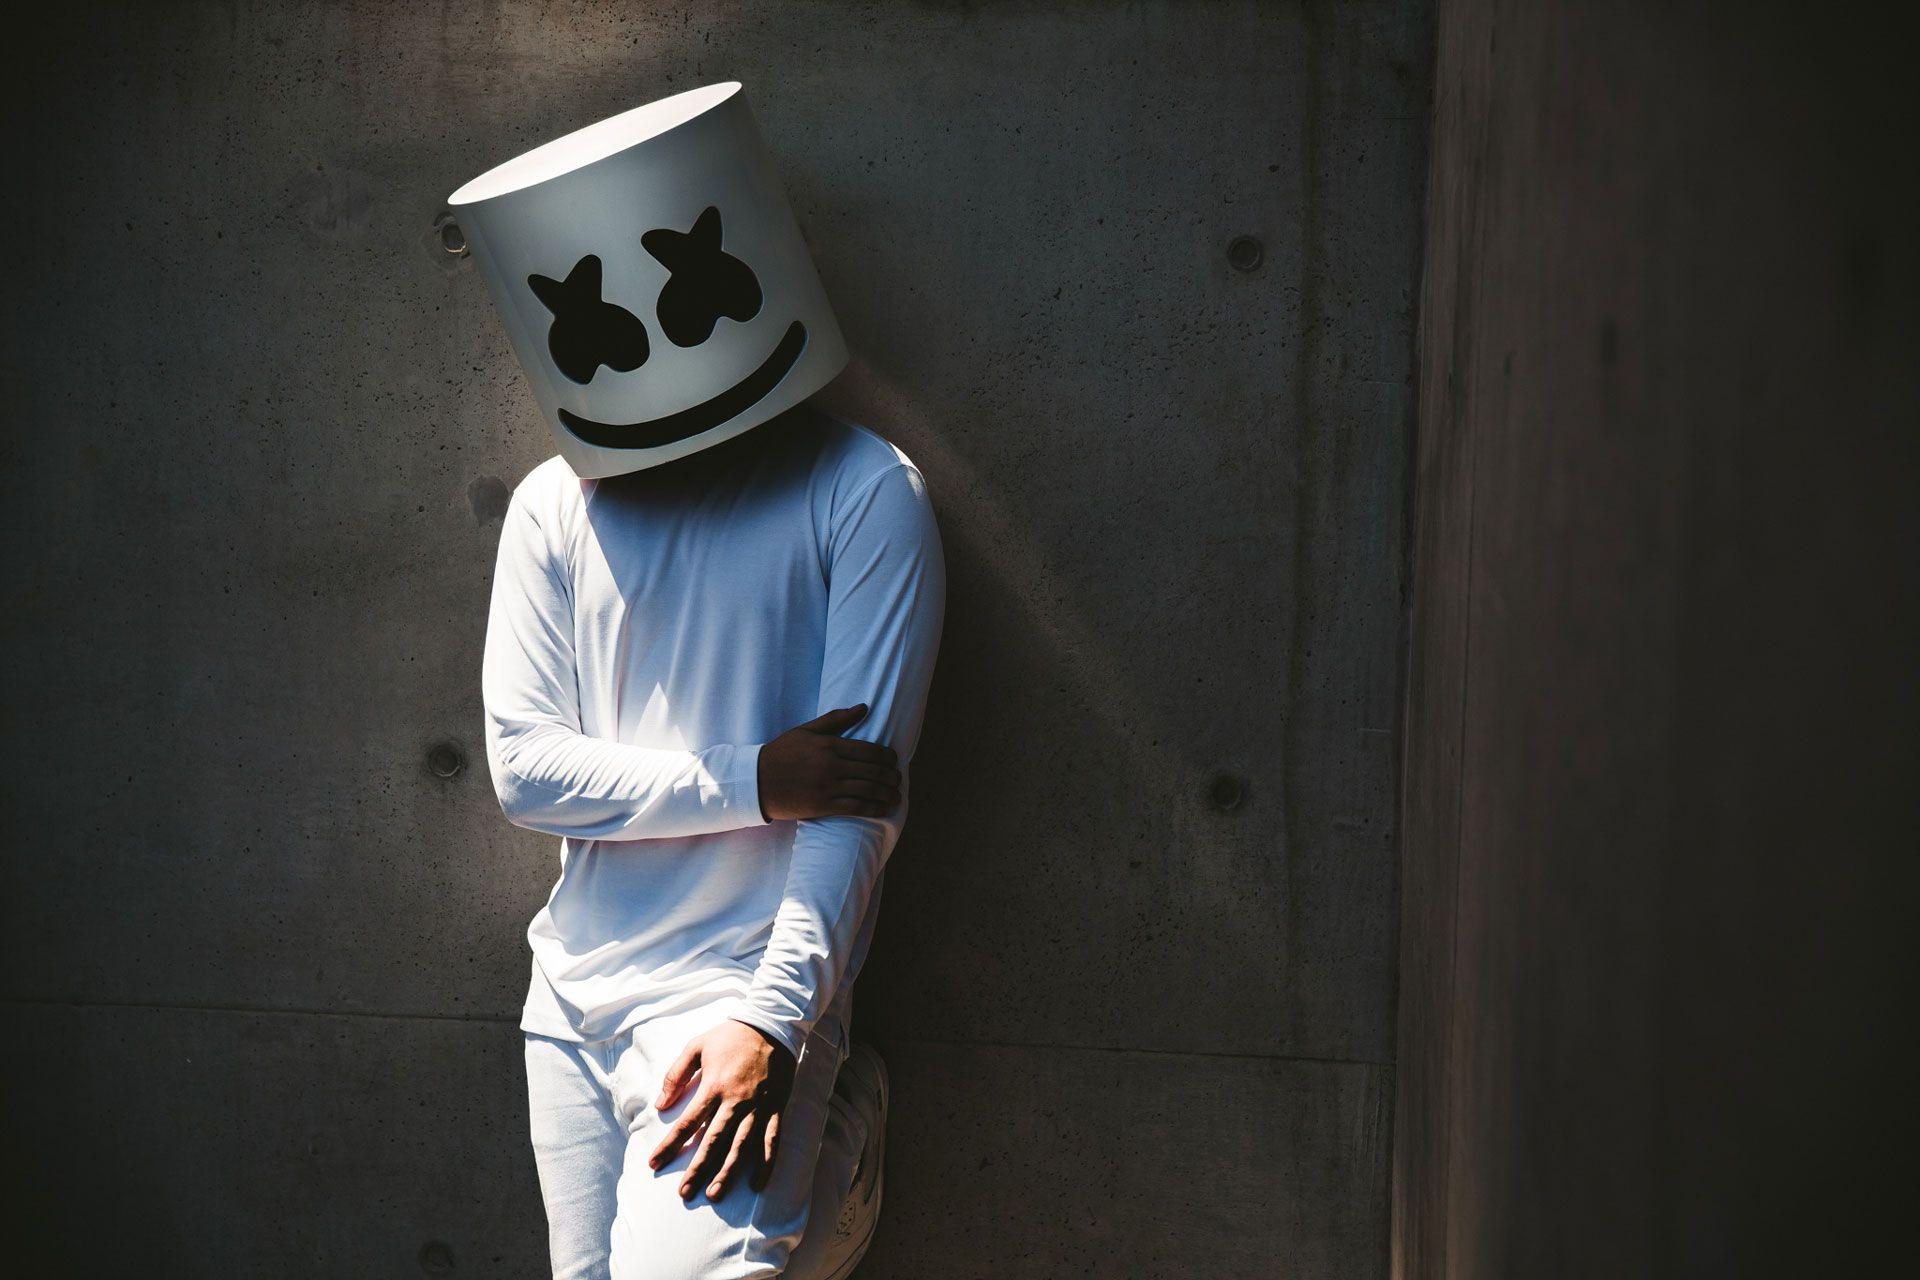 Marshmello 2018 Wallpapers - Wallpaper Cave